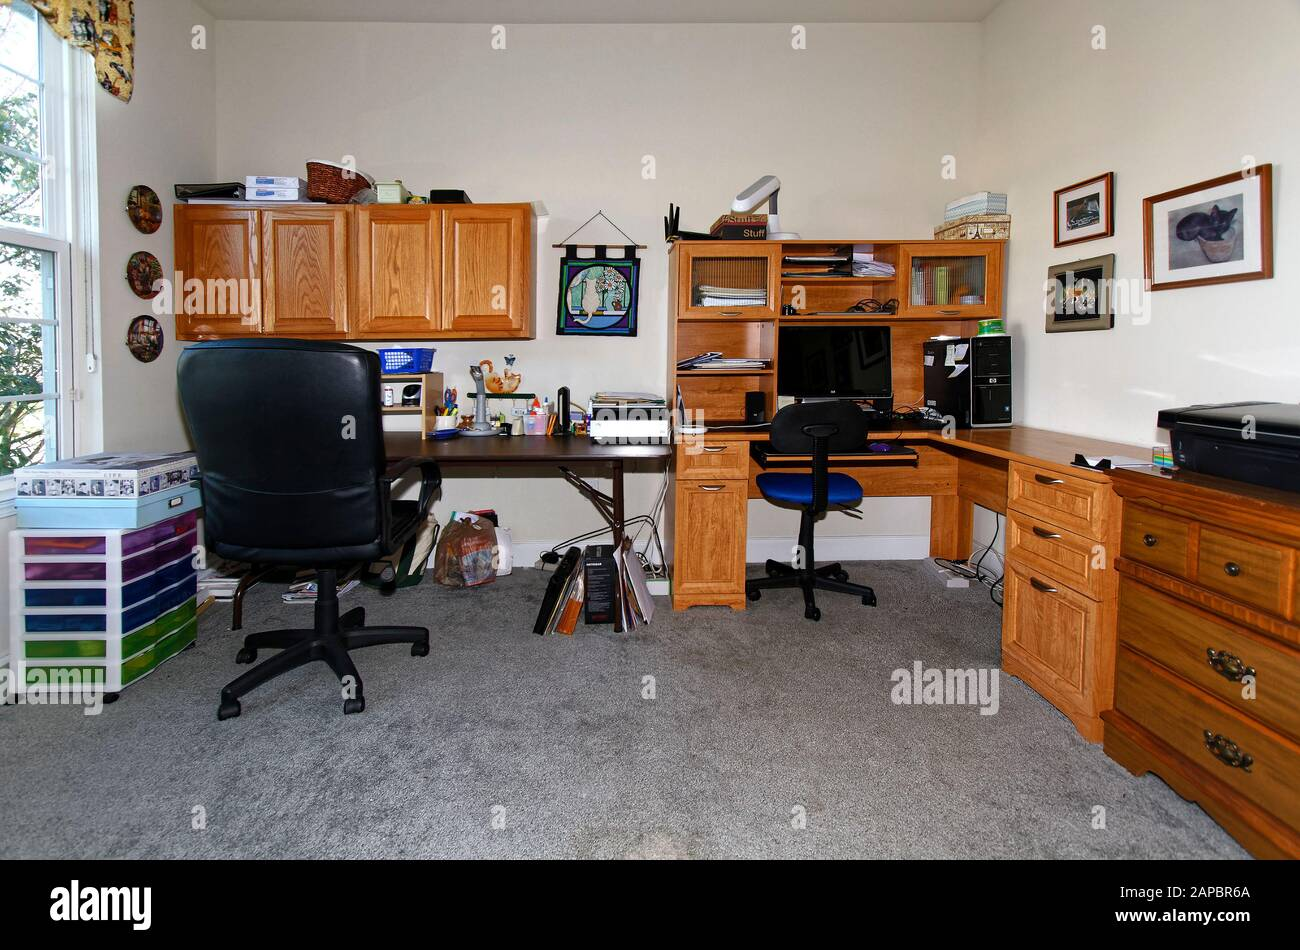 Home Office L Shape Desk Work Table Wall Cabinets Computer Chairs Lamps Craft Equipment Window Horizontal Pr Stock Photo Alamy